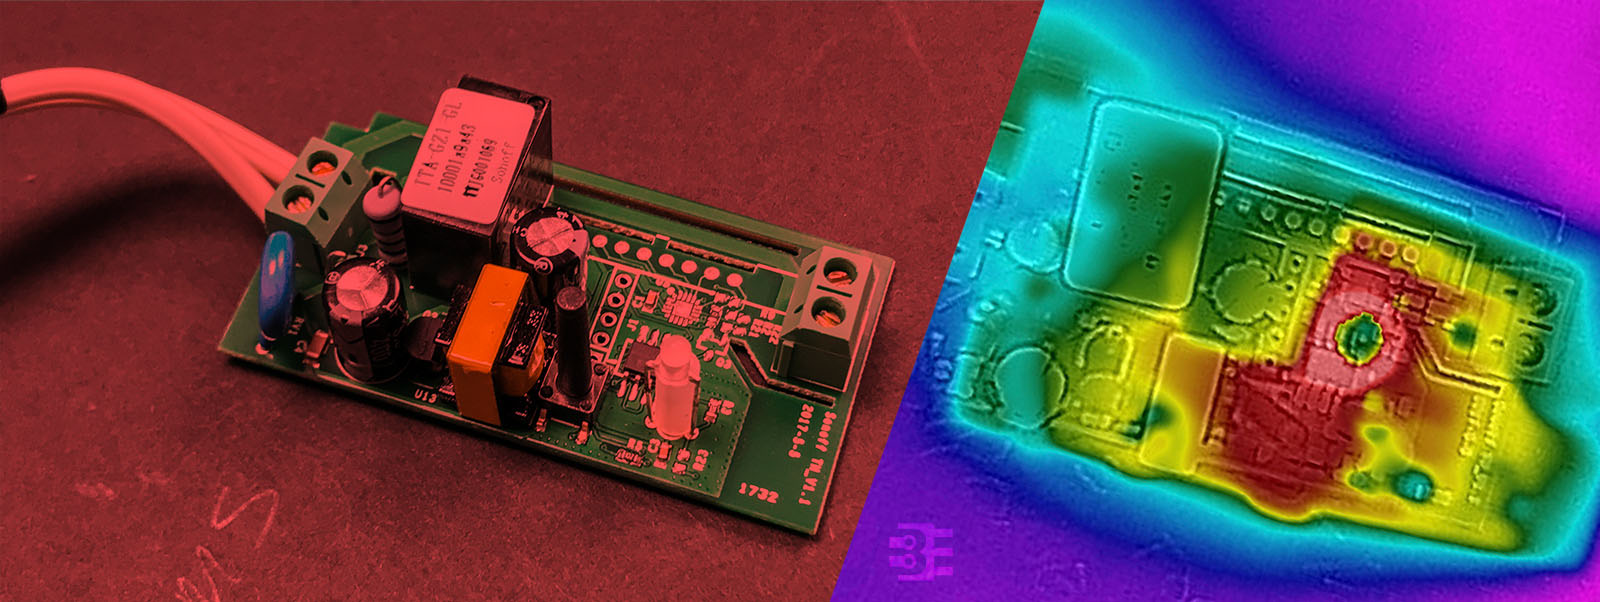 Debug Sonoff Ac Relay With A Thermal Camera Bald Engineer Replace Switch Unit